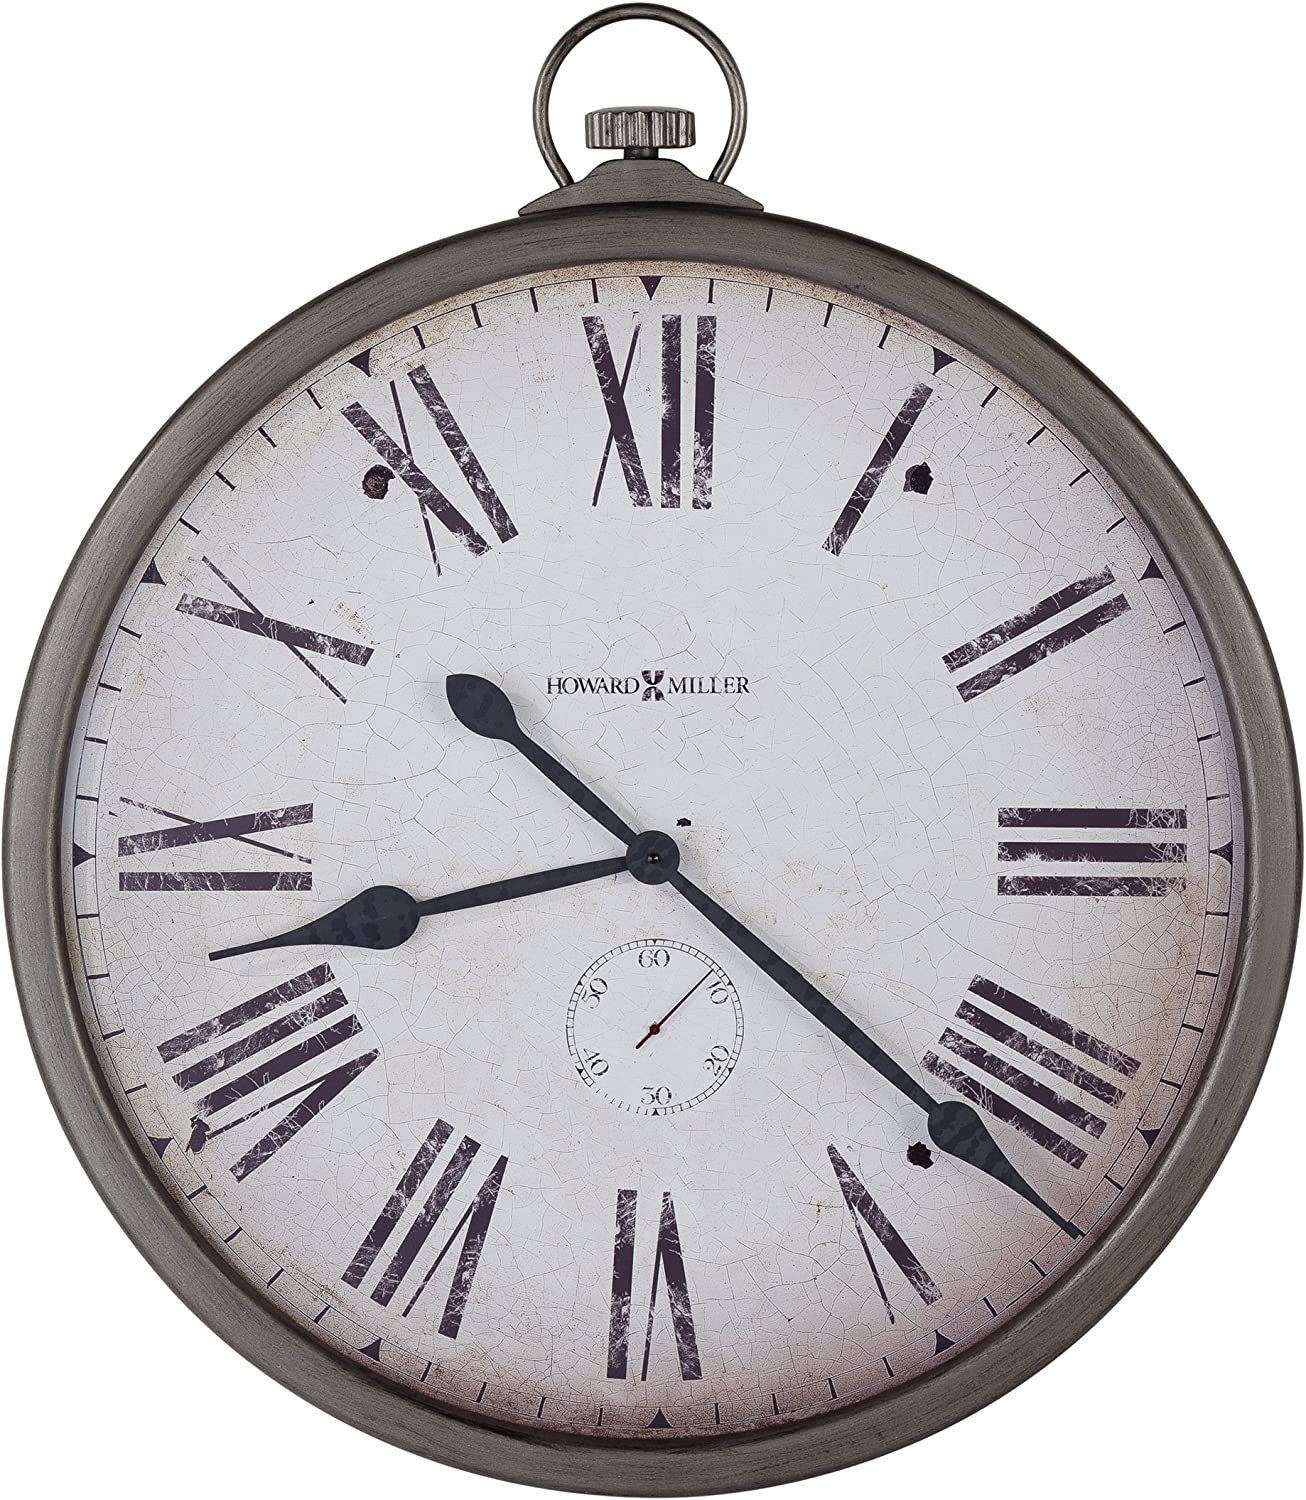 "Howard Miller Gallery Pocket Watch Wall Clock 625-572 – 35"" Oversized Antique Nickel Home Decor with Quartz Movement"